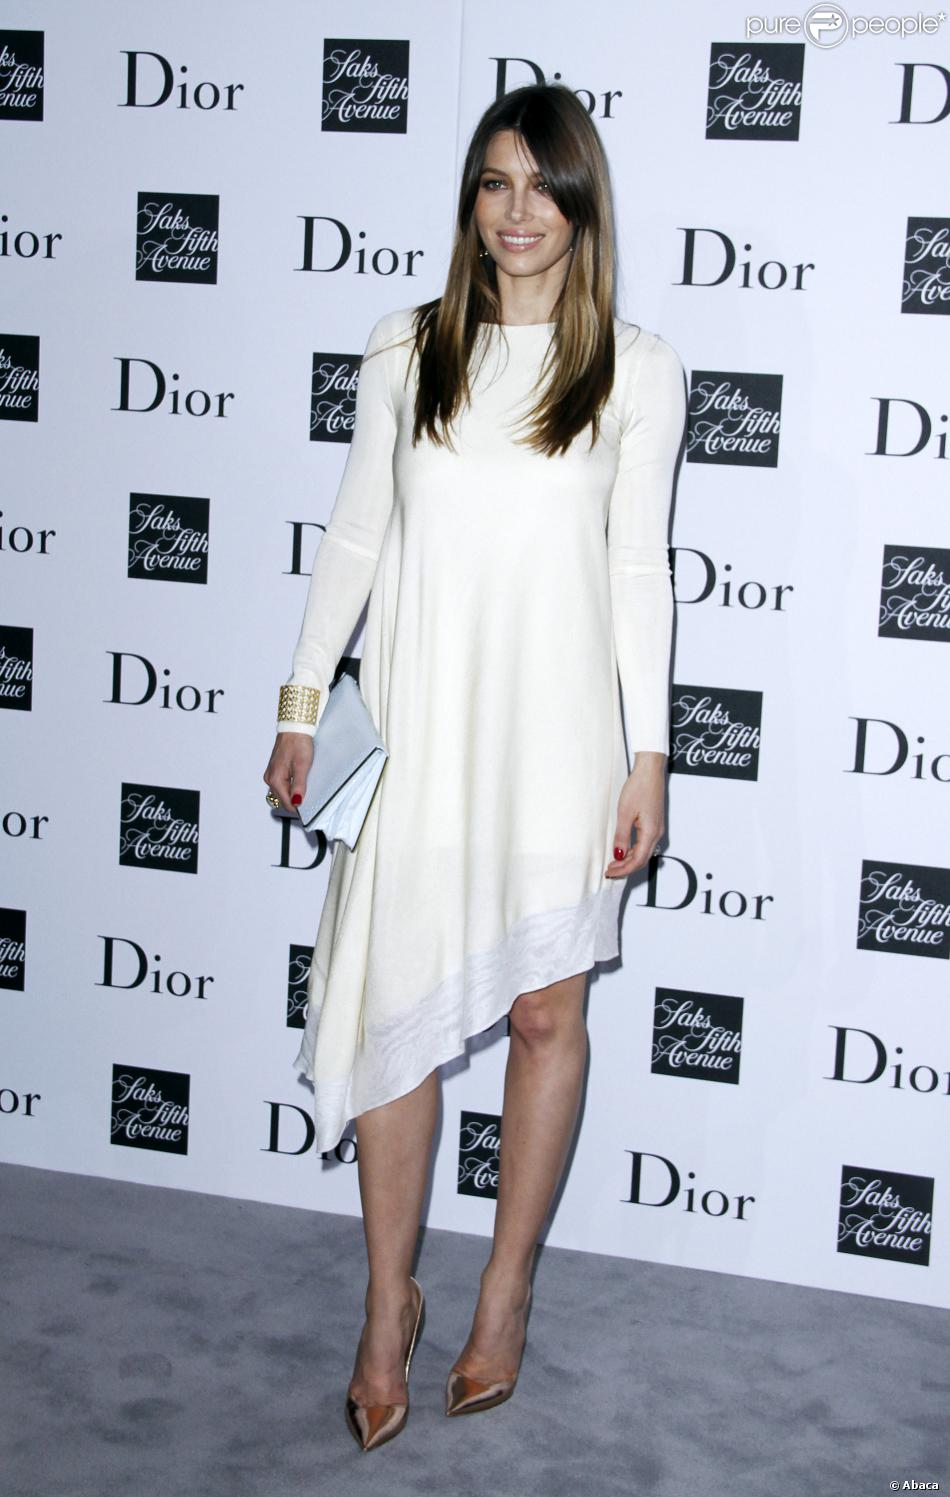 Jessica Biel assiste à la soirée Dior au centre commercial Saks Fifth Avenue. New York, le 6 septembre 2013.